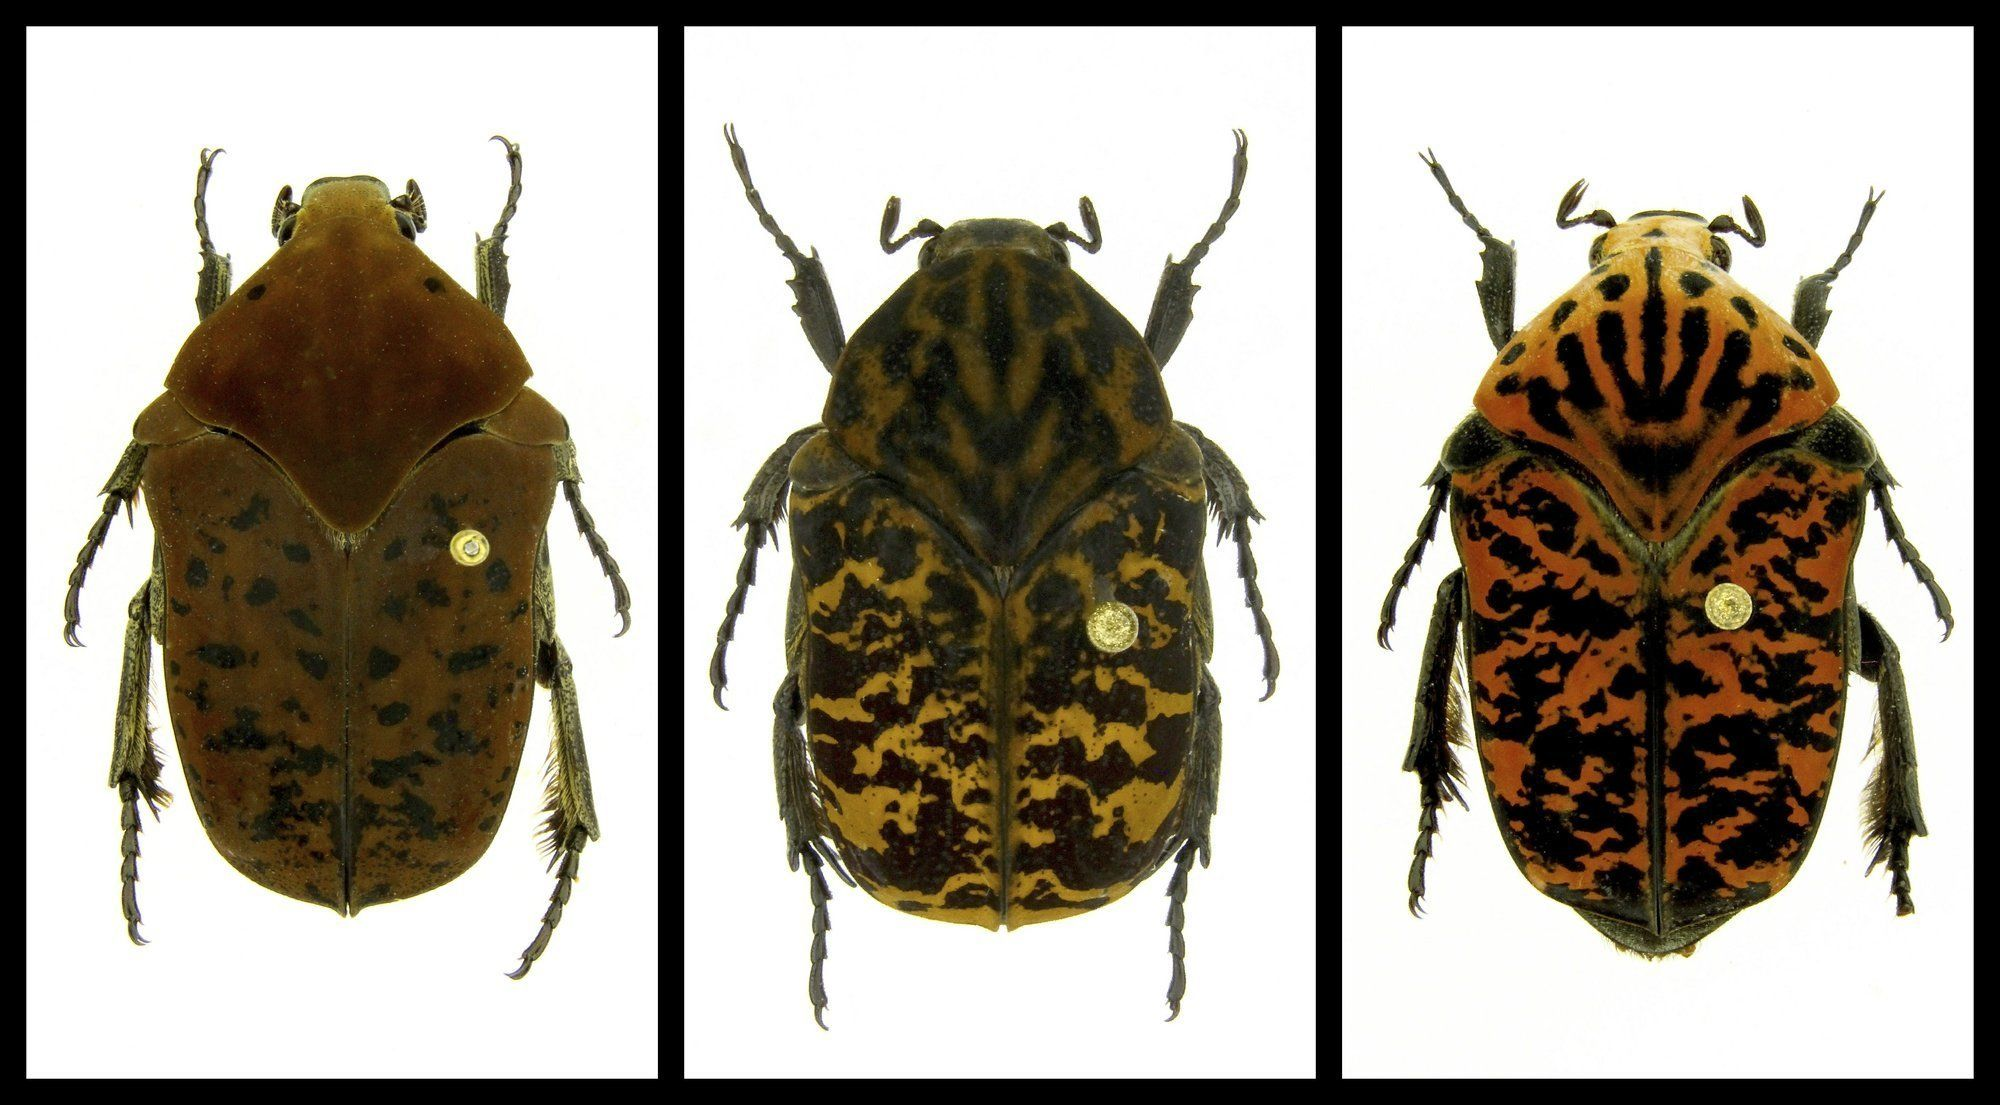 """This combination of undated photos provided by Brett Ratcliffe in December 2018 shows, from left, Gymnetis drogoni, Gymnetis rhaegali and Gymnetis viserioni beetles from South America. Ratcliffe named three of his eight newest beetle discoveries after the dragons from the HBO series """"Game of Thrones"""" and George R.R. Martin book series """"A Song of Ice and Fire."""""""